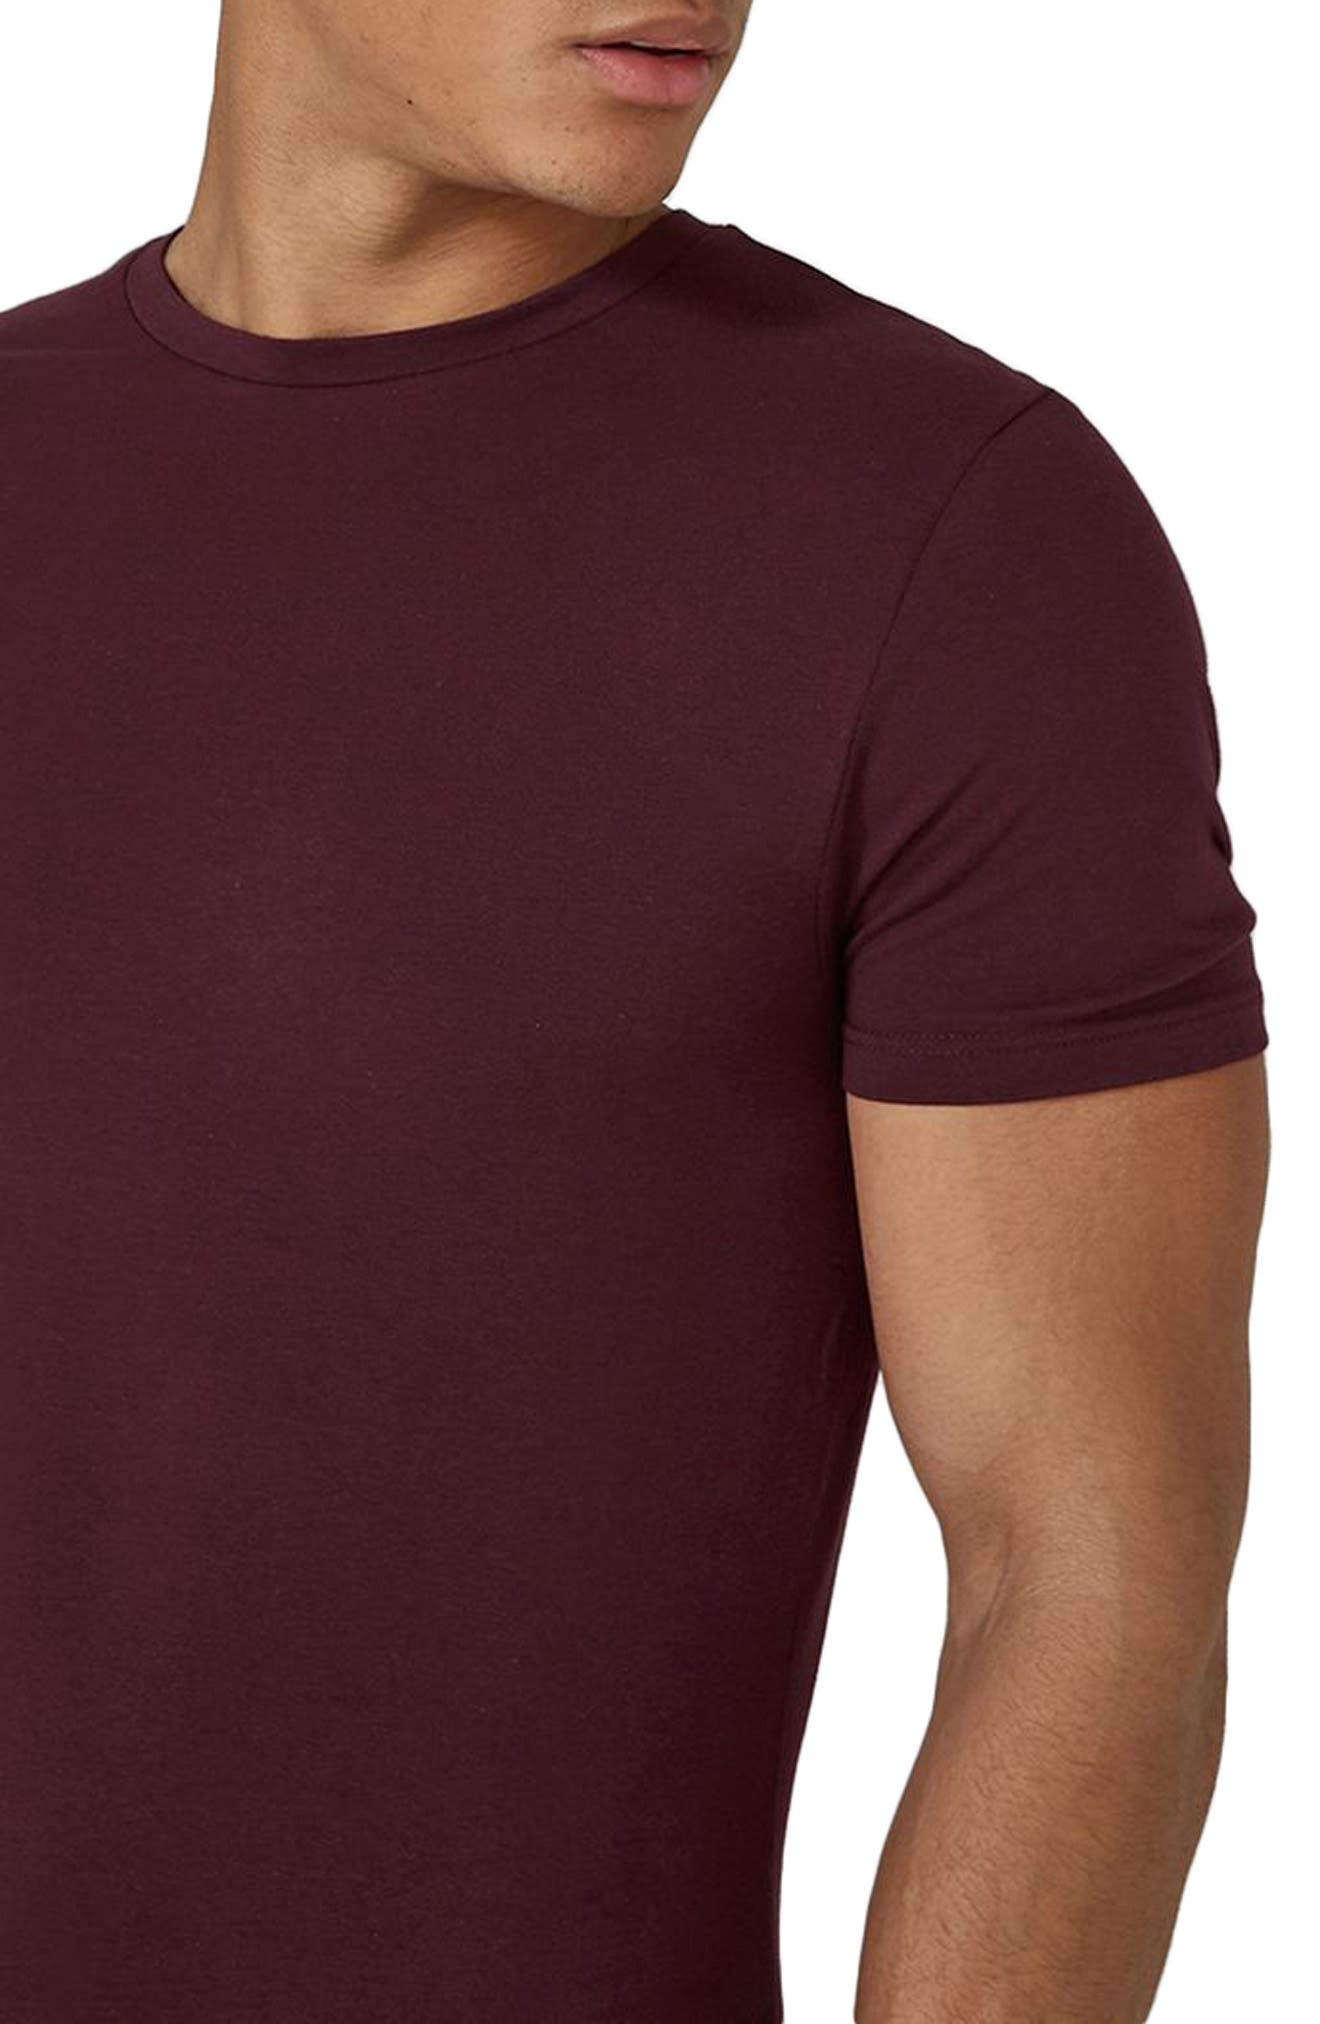 Ultra Muscle Fit T-Shirt,                             Alternate thumbnail 3, color,                             930